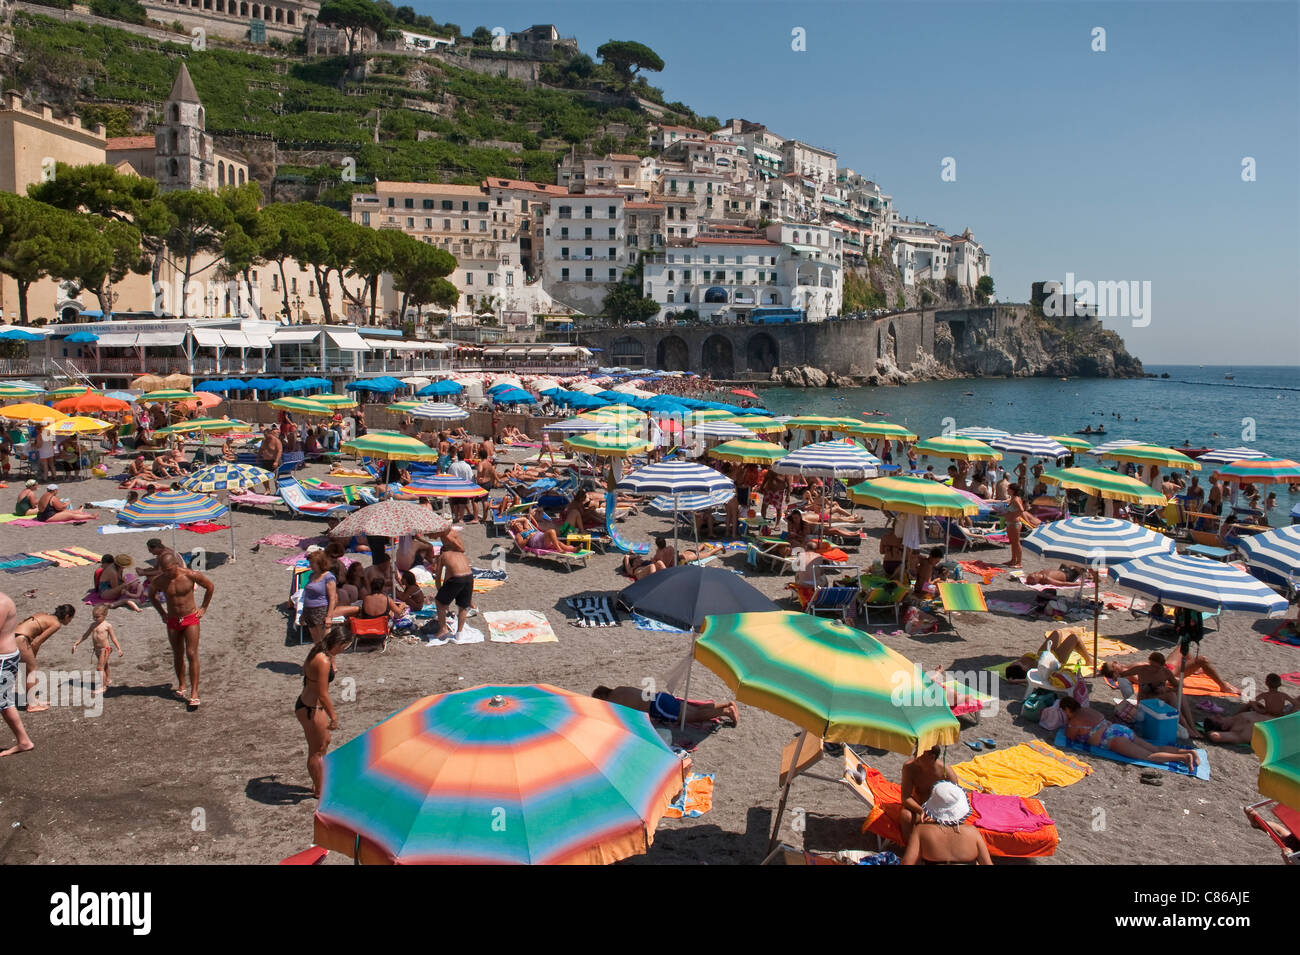 Amalfi, Italy. The tiny beach is packed with visitors in high summer - Stock Image